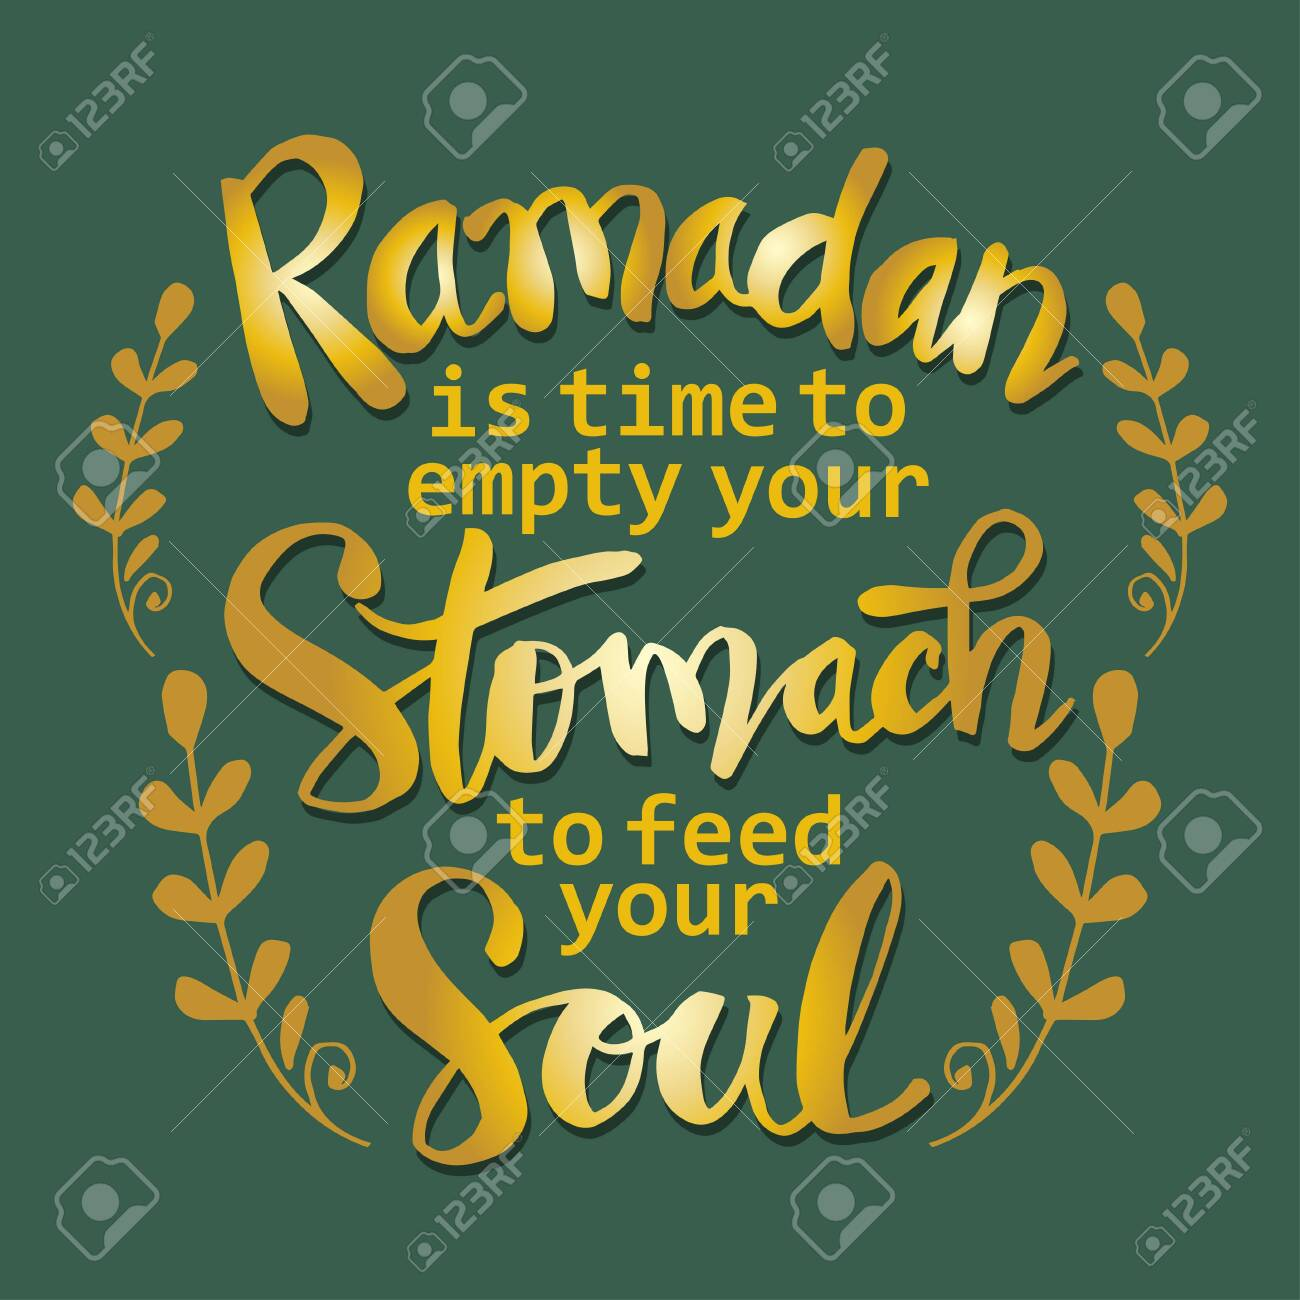 Ramadan is time to empty your stomach to feed your soul. Ramadan quotes. - 146584312